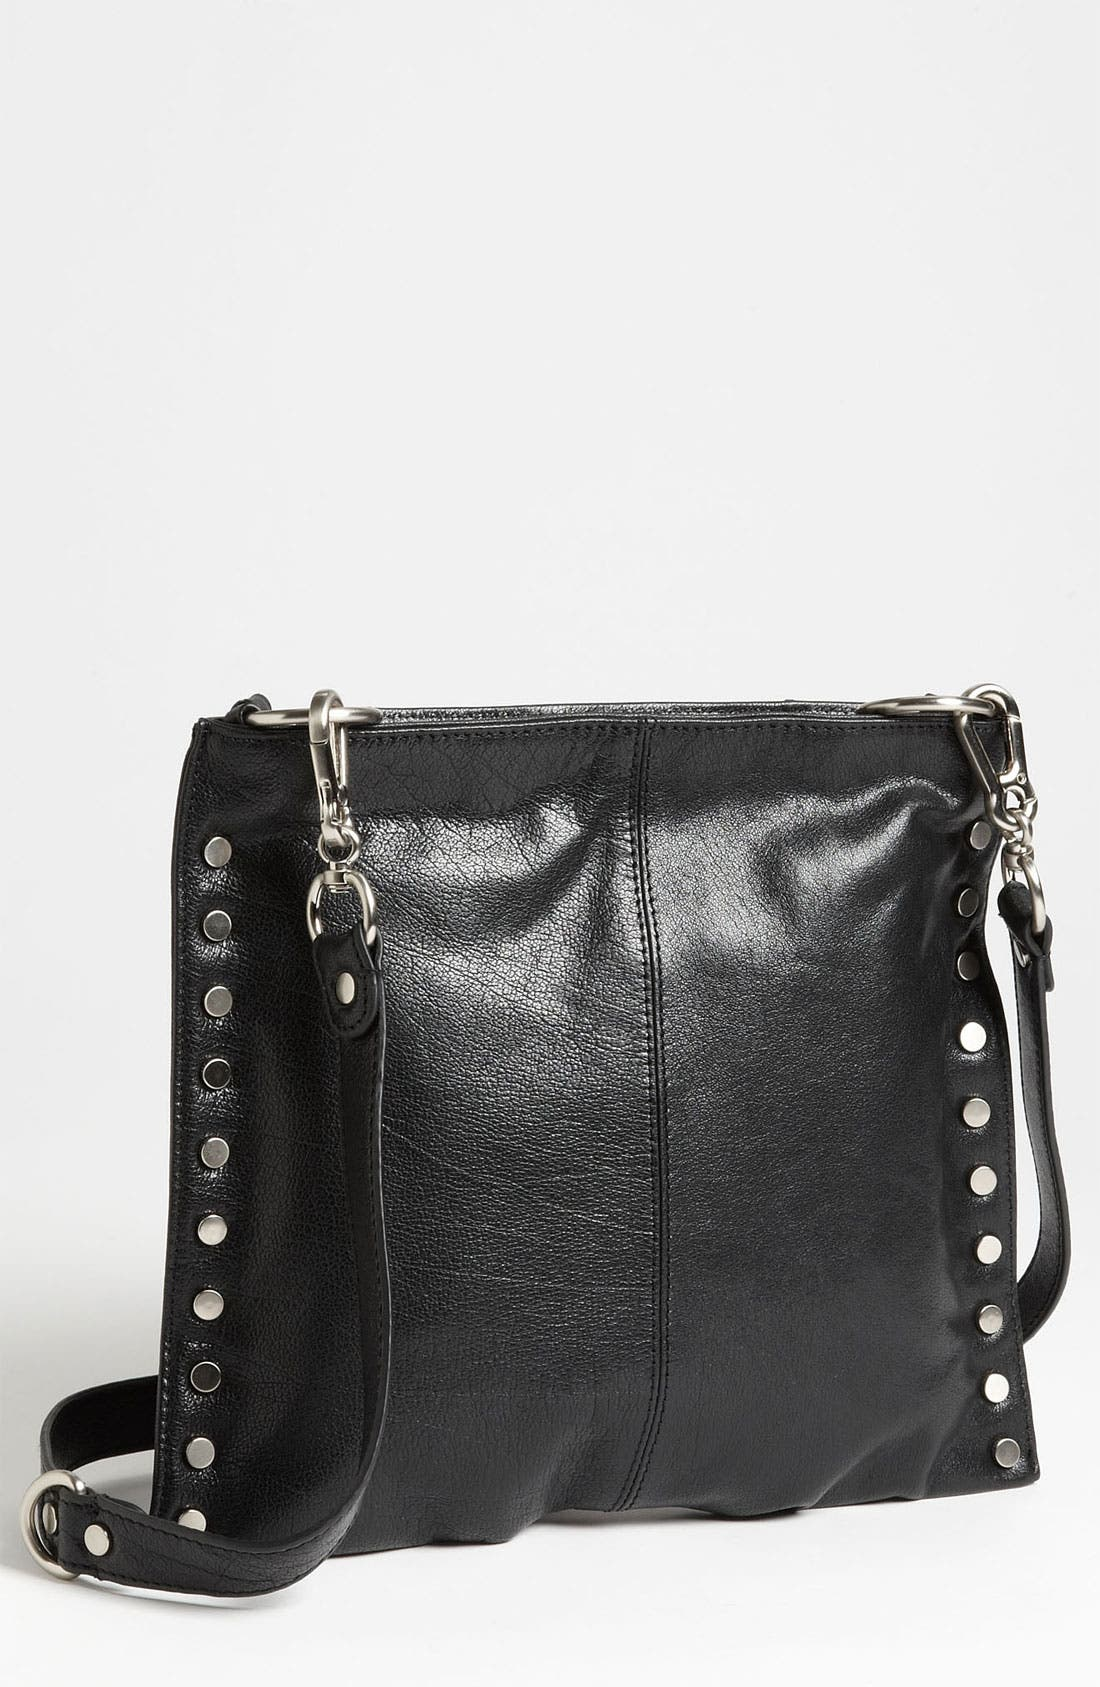 Sloane & Alex 'Angie' Leather Crossbody Bag, Main, color, 001